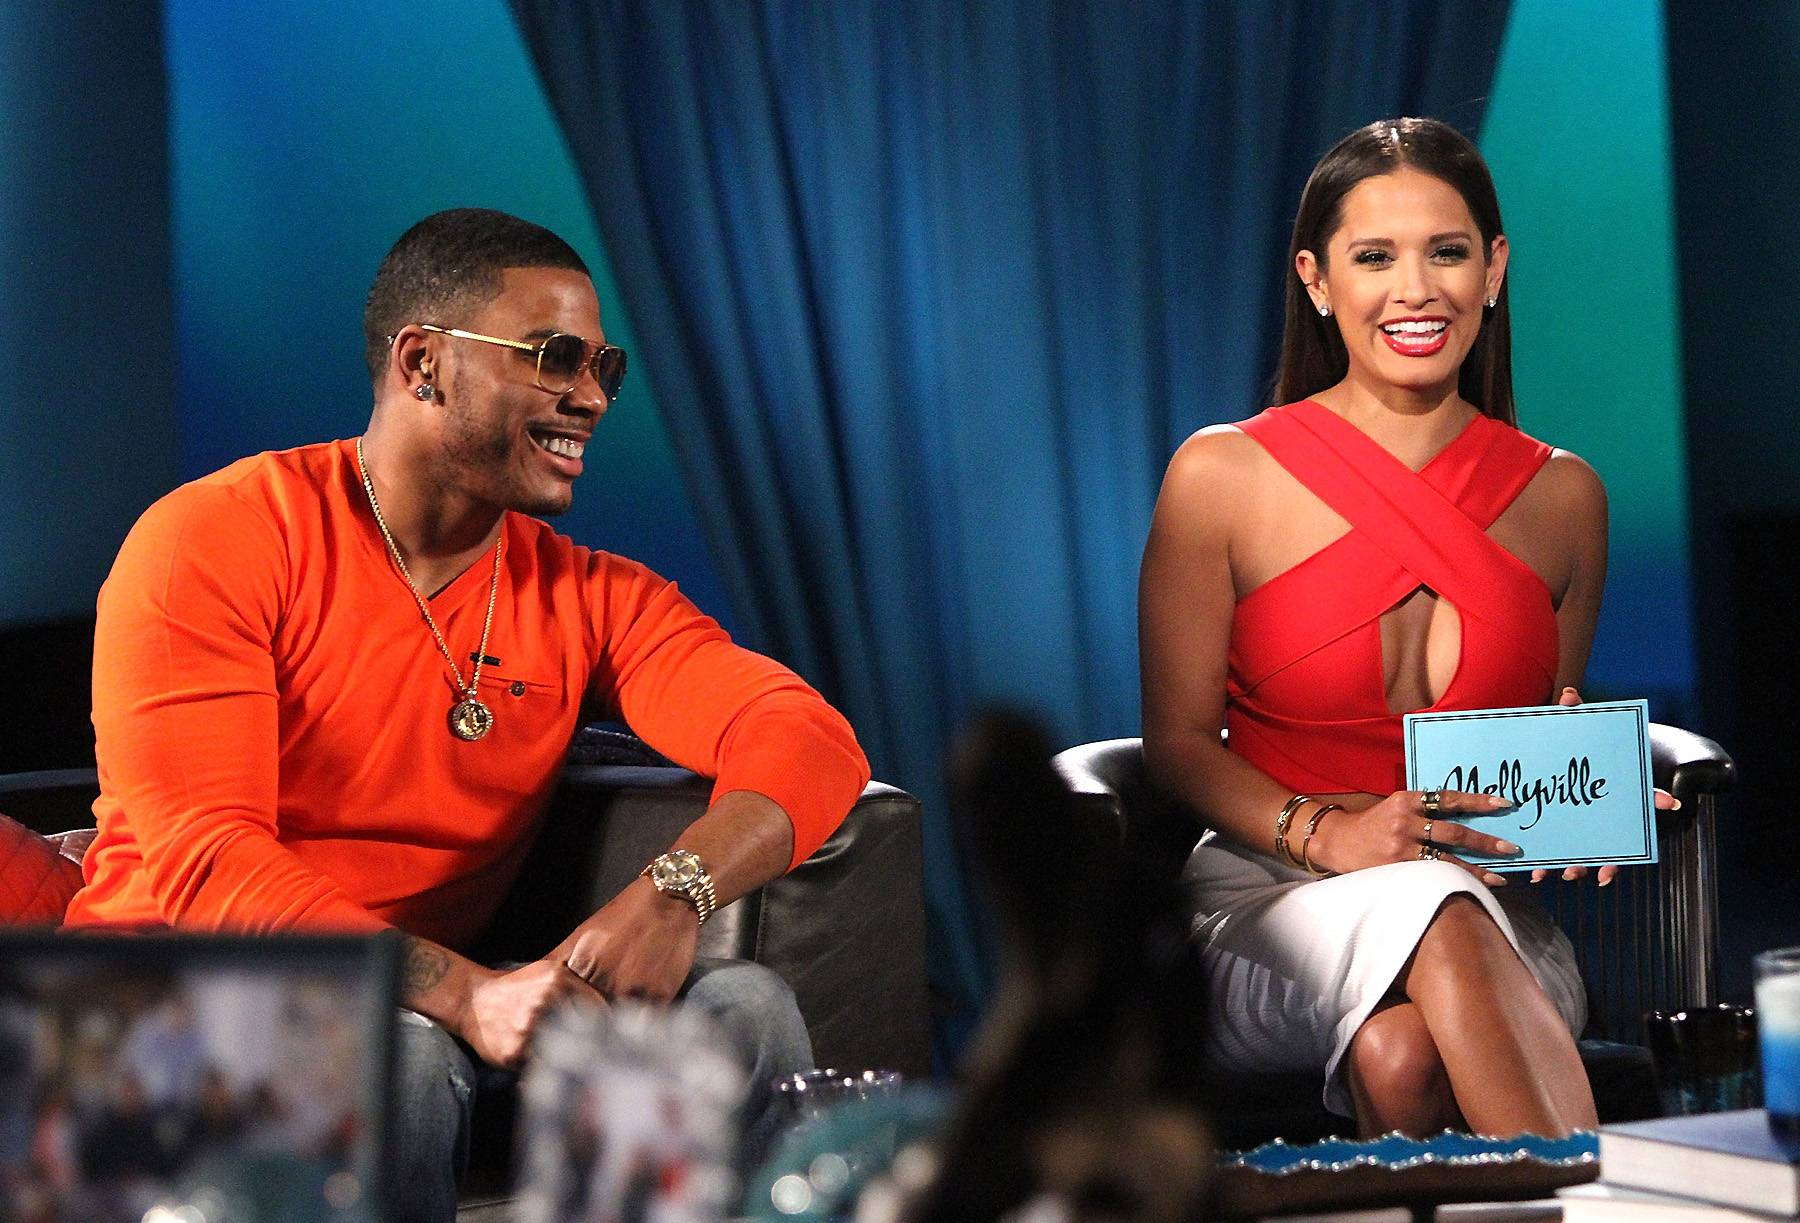 'Let the (Great) Times Roll' - Nelly and Rocsi Diaz can't stop laughing. (Photo: Maury Phillips/WireImage)